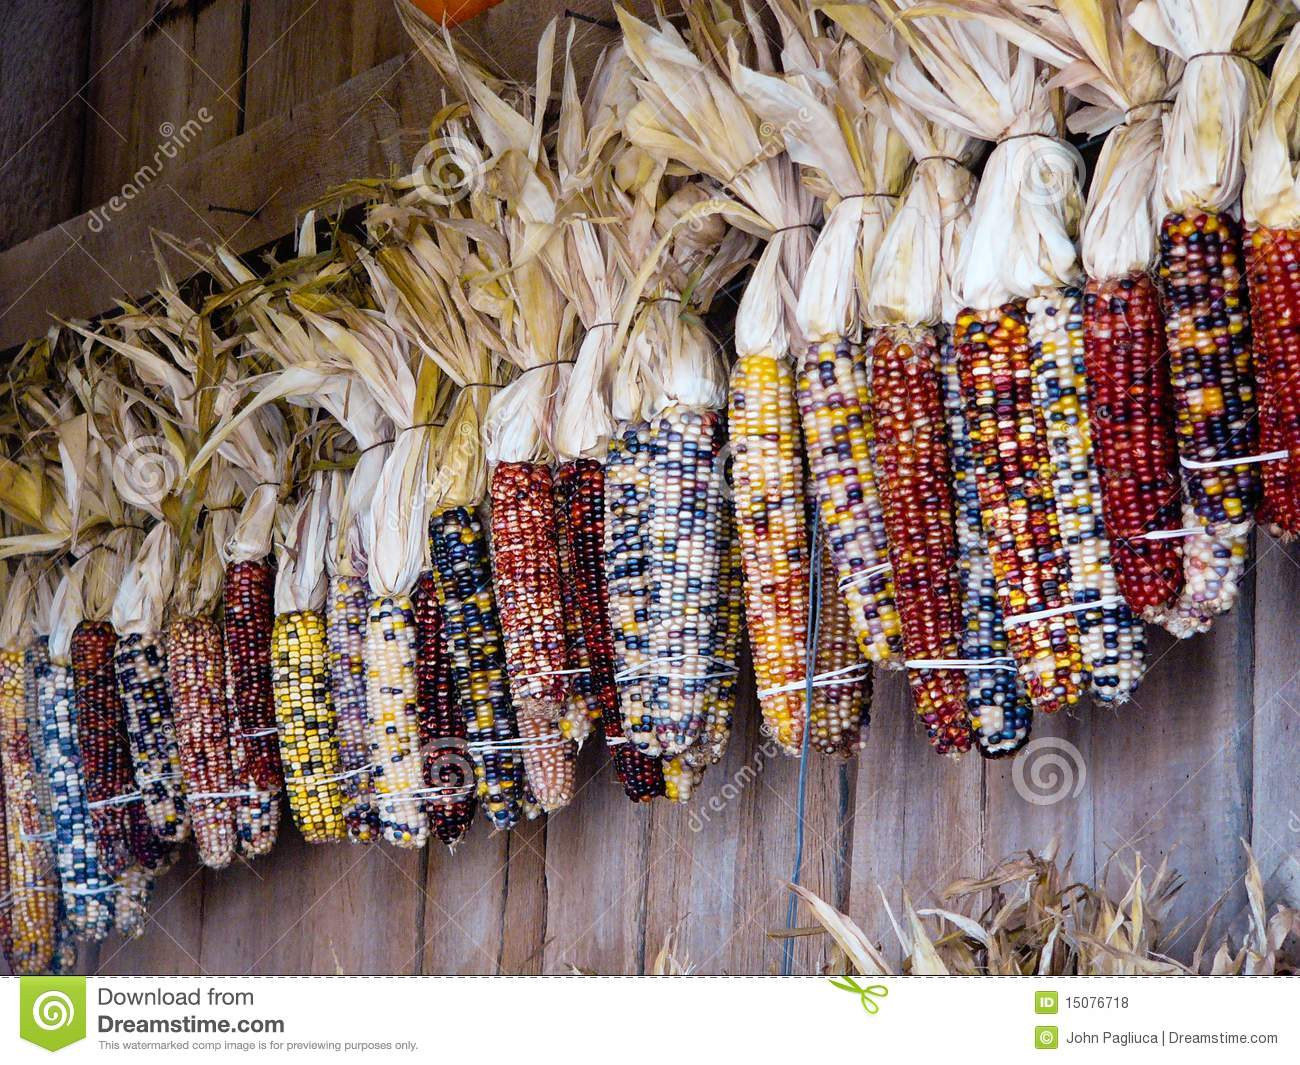 Fall Barn Wallpaper Colorful Indian Corn Hanging On Wooden Wall Stock Photo